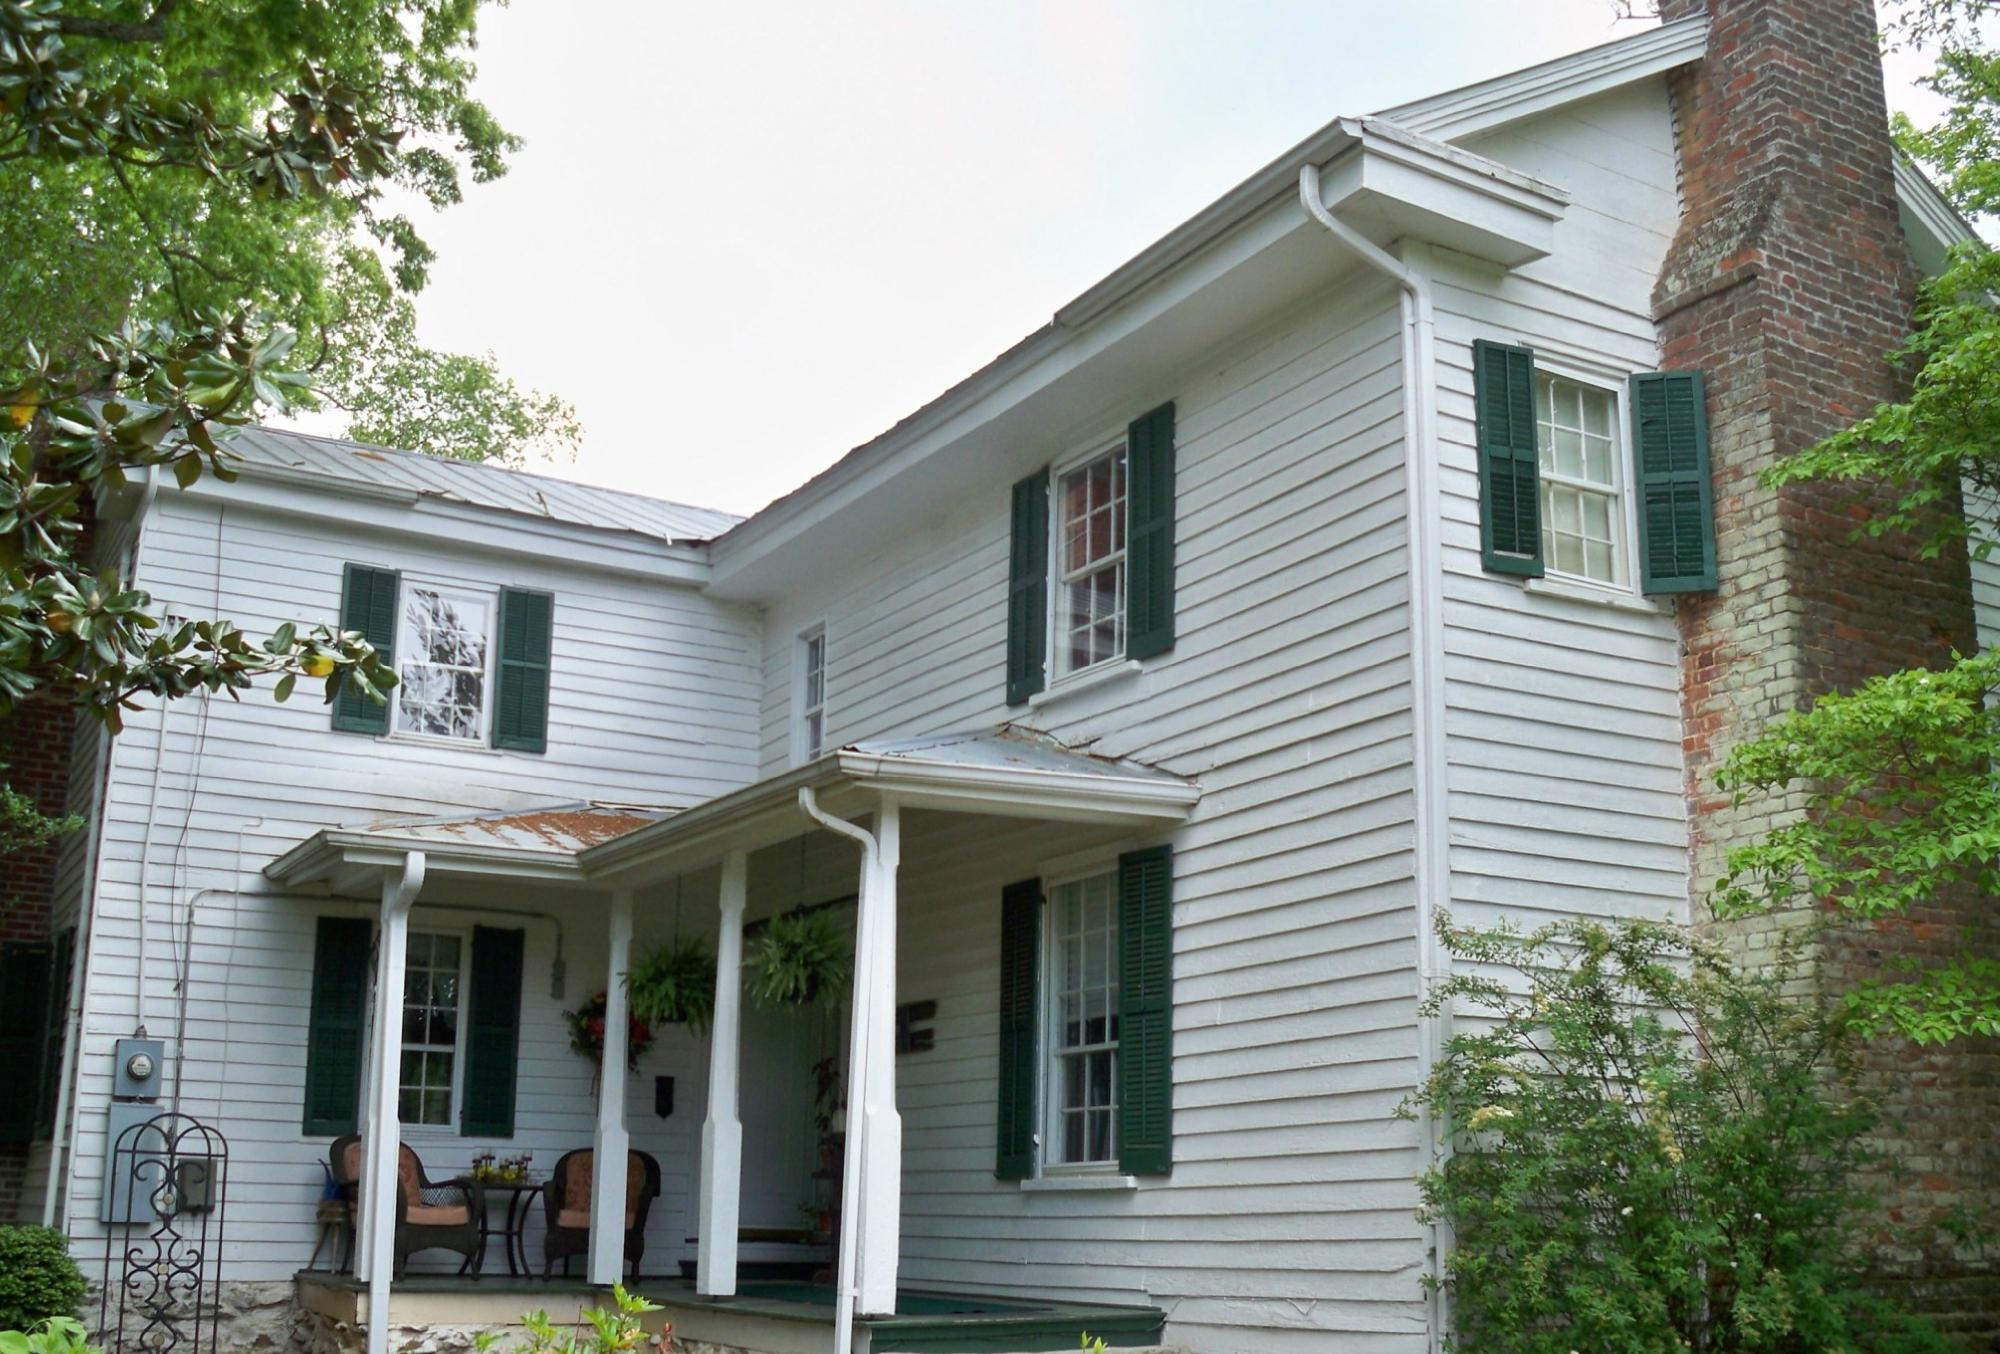 The Rockford Inn Bed and Breakfast